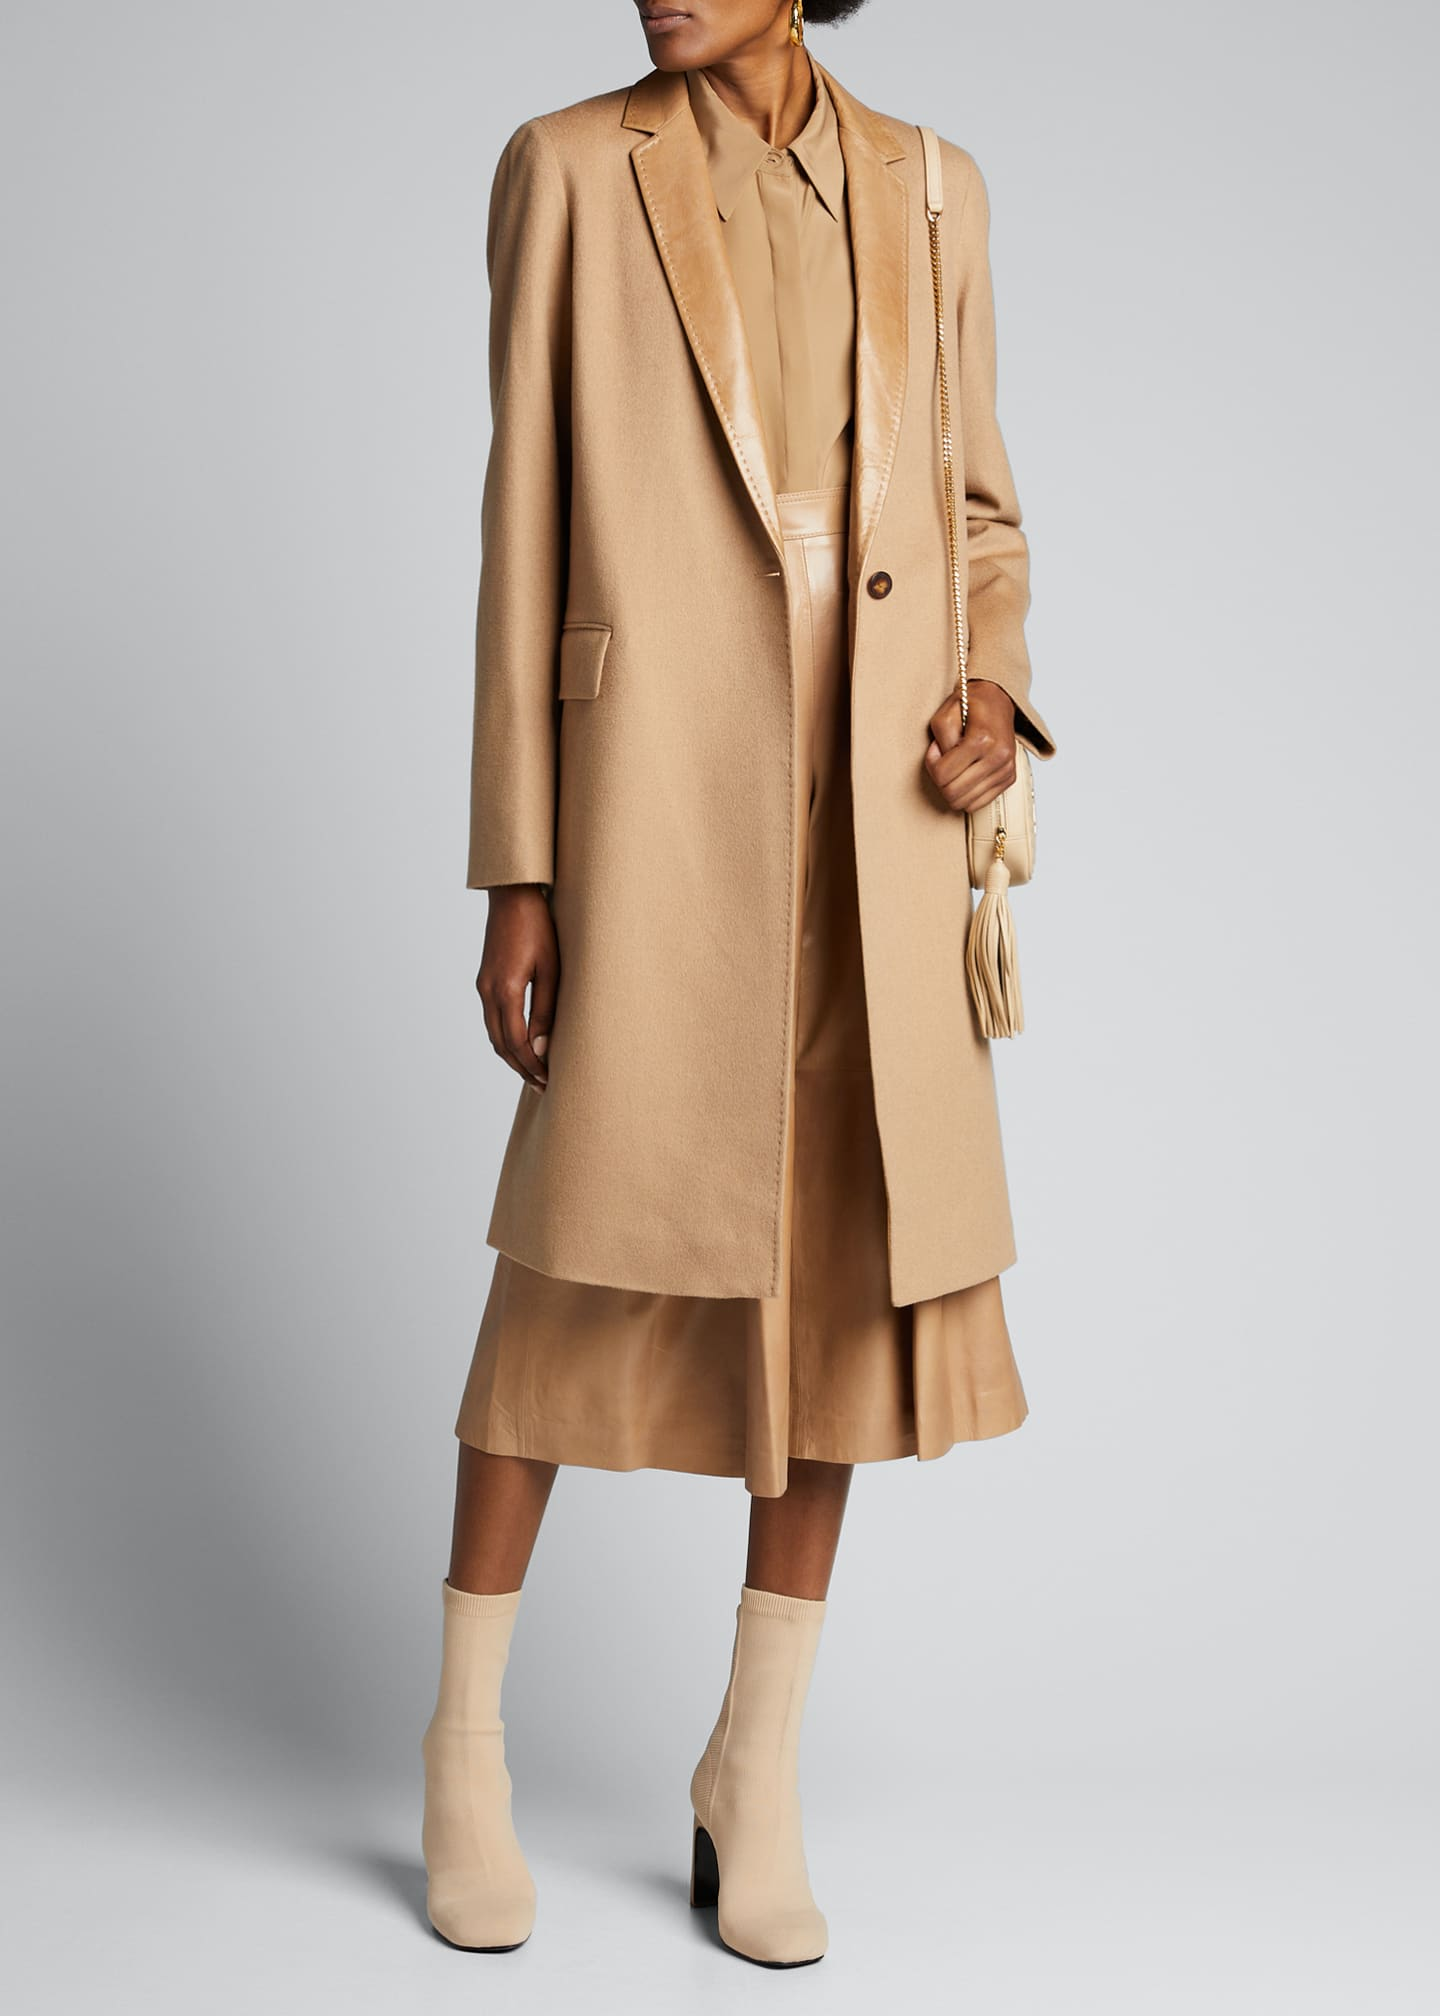 Lafayette 148 New York Marabela Camel Hair Coat